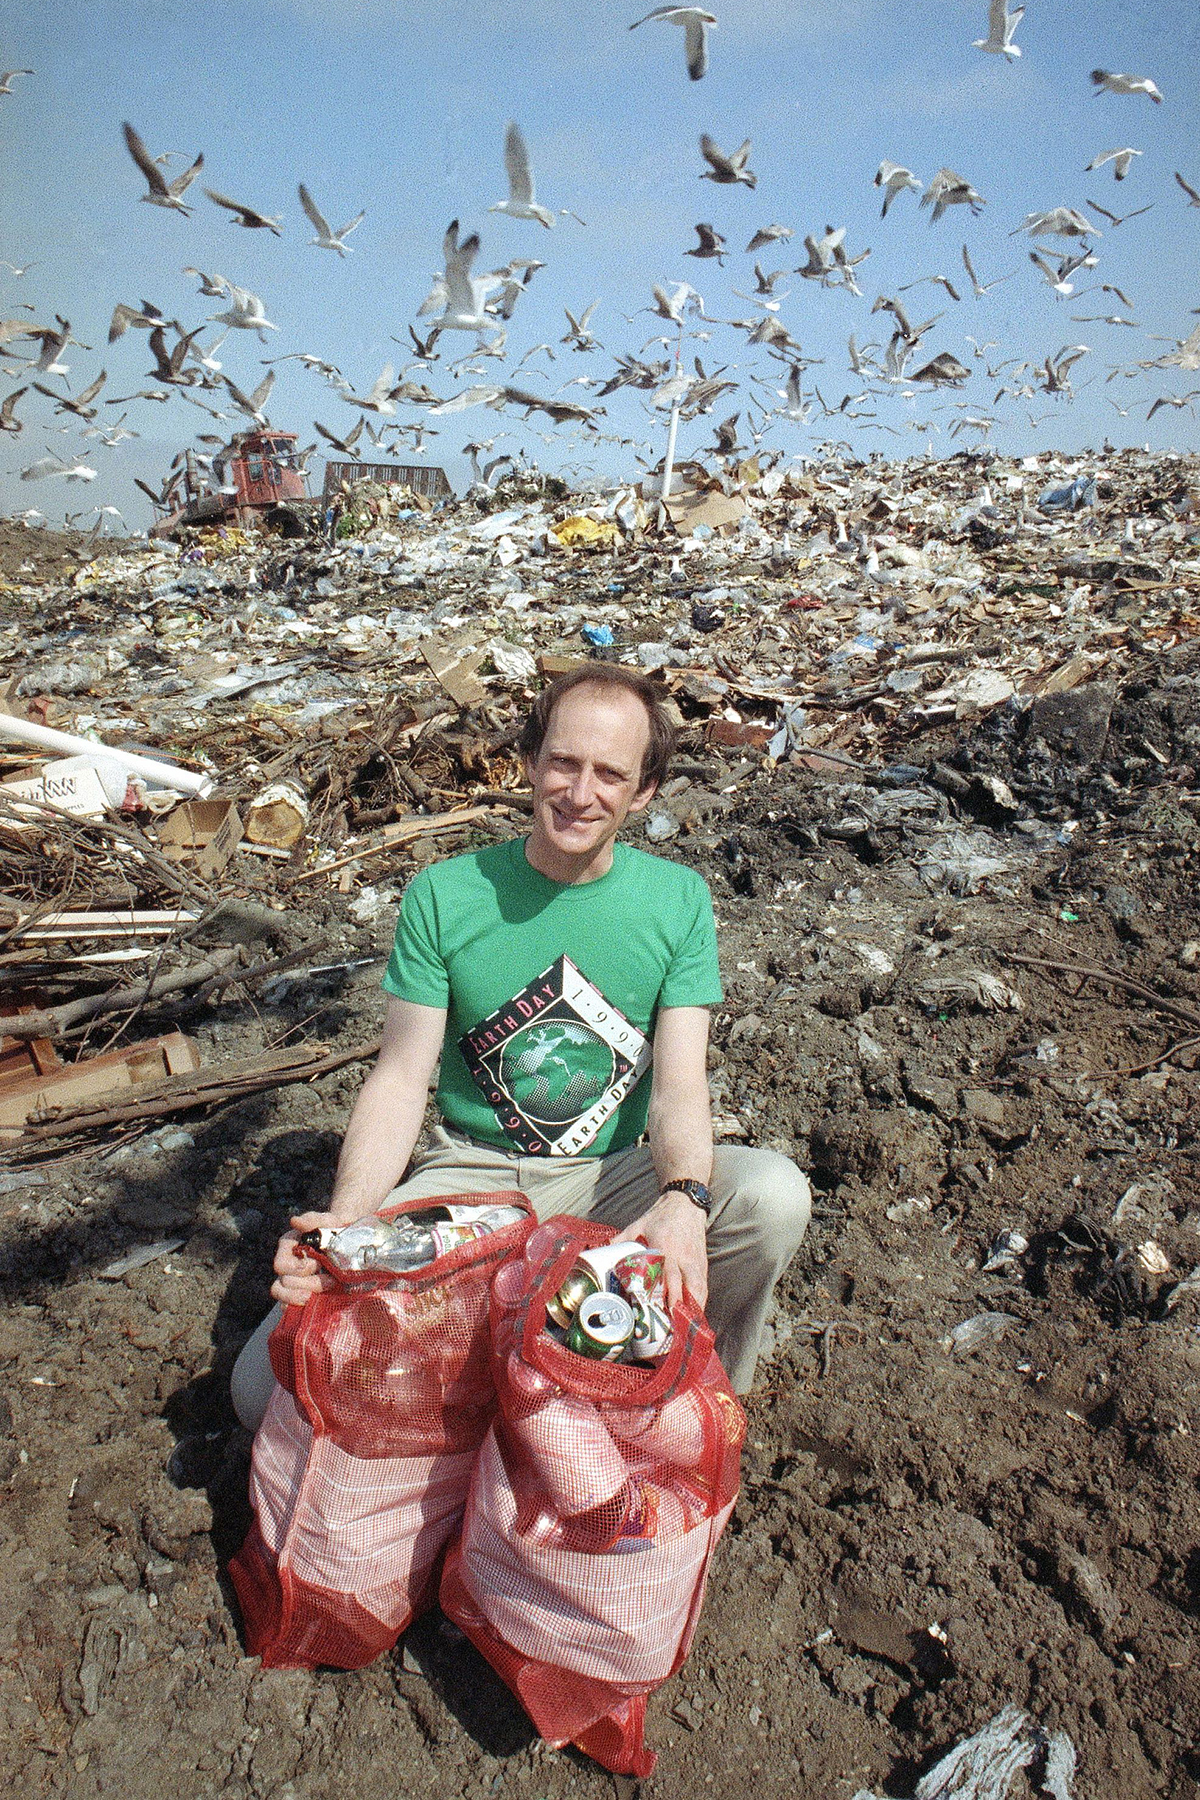 Denis Hayes Earth Day founder and Palo Alto, California resident Denis Hayes at a dump site in Palo Alto, California, as he displays burlap sacks filled with empty glass bottles and metal cans that local residents use in a weekly recycling program. Hayes urges all people to recycle as an alternative to dumpingDenis Hayes at dump site, Palo Alto, USA